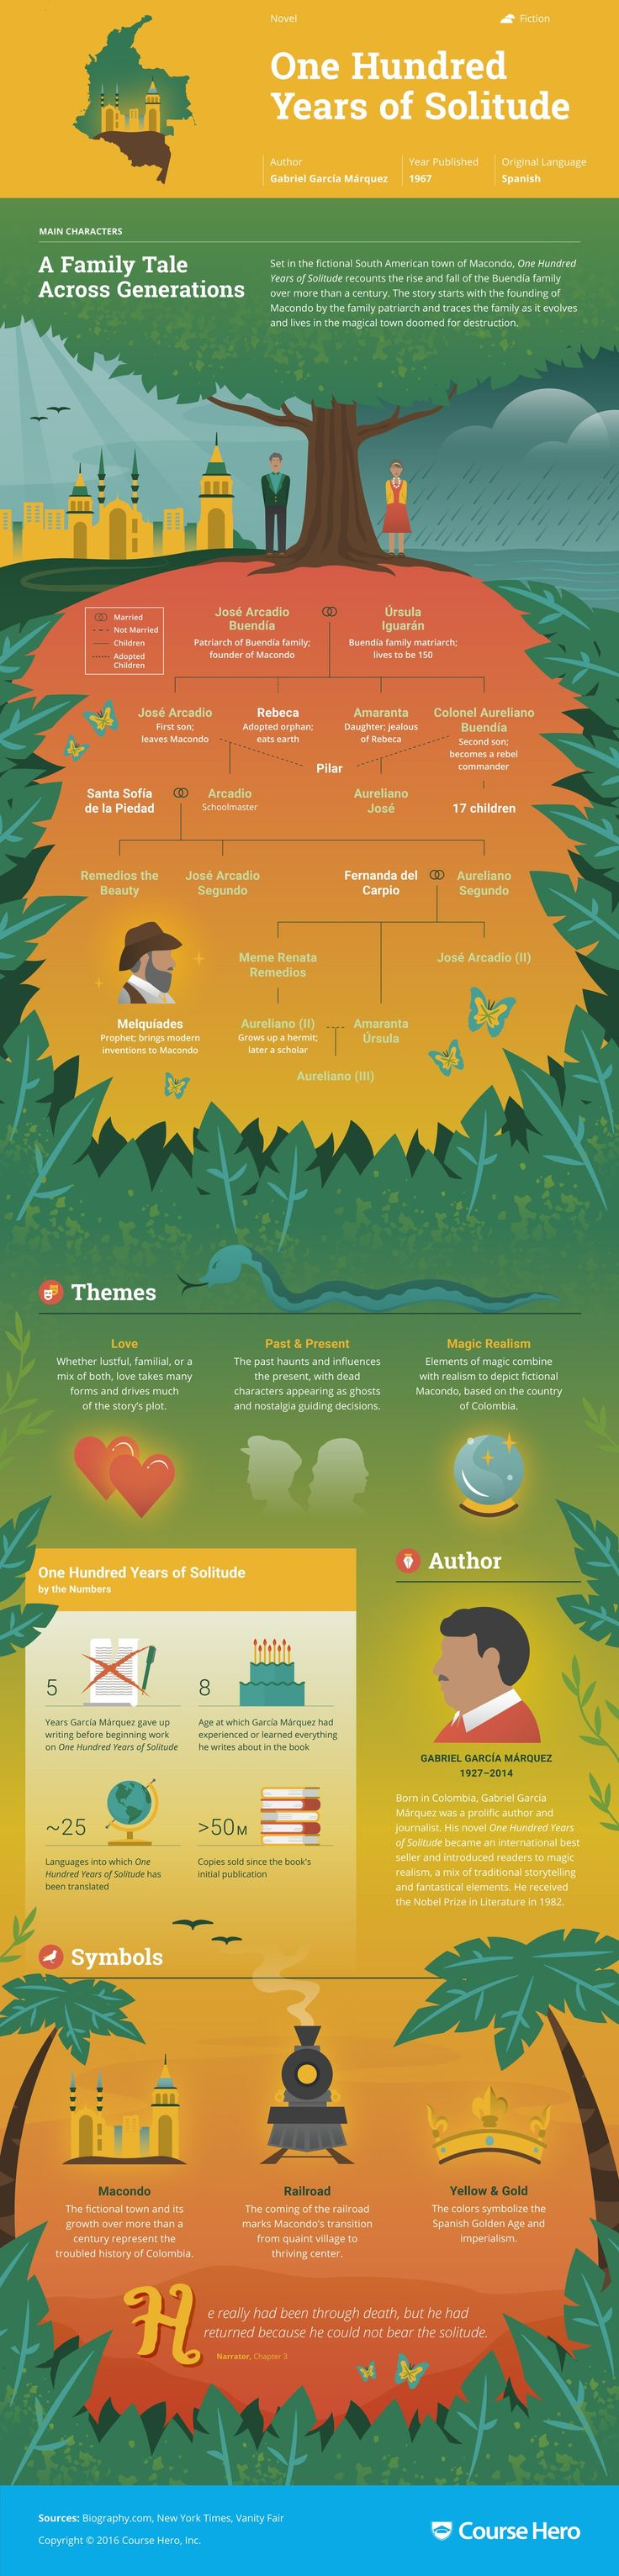 One Hundred Years of Solitude Infographic | Course Hero